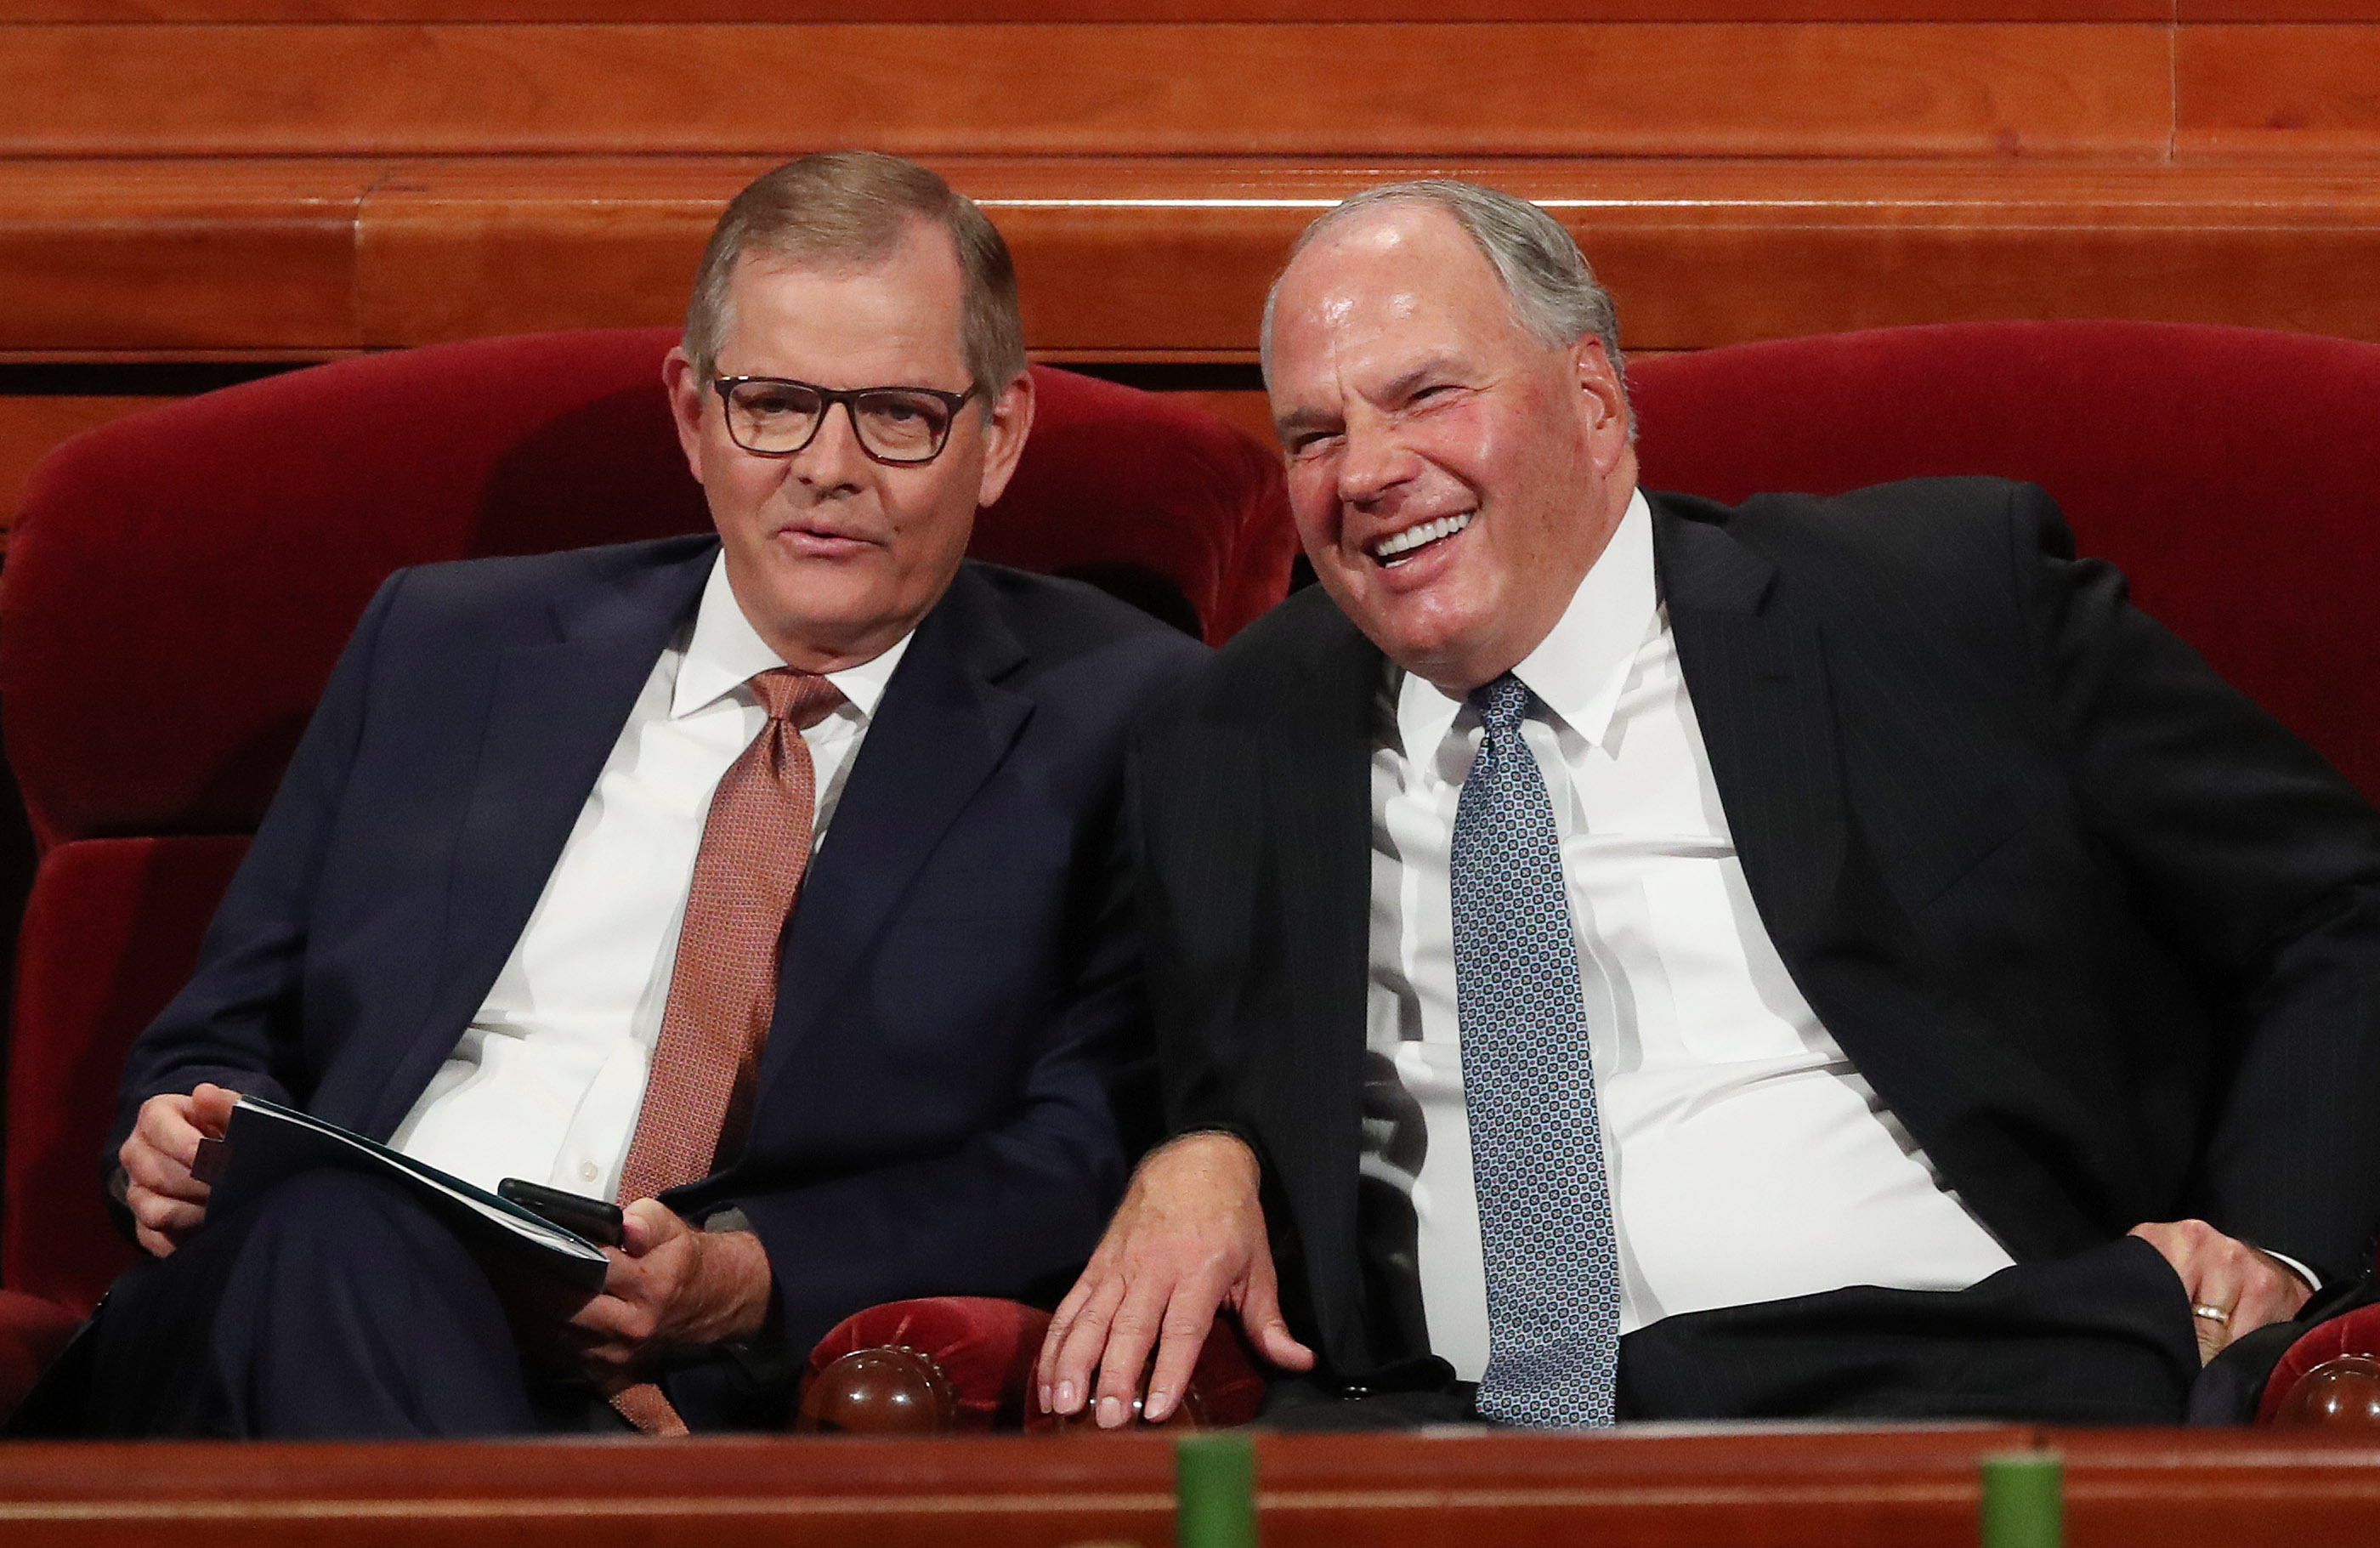 Elder Gary E. Stevenson and Elder Ronald A. Rasband of the Quorum of the Twelve Apostles talk prior to the Sunday afternoon session of the 188th Semiannual General Conference of The Church of Jesus Christ of Latter-day Saints in the Conference Center in Salt Lake City on Sunday, Oct. 7, 2018.